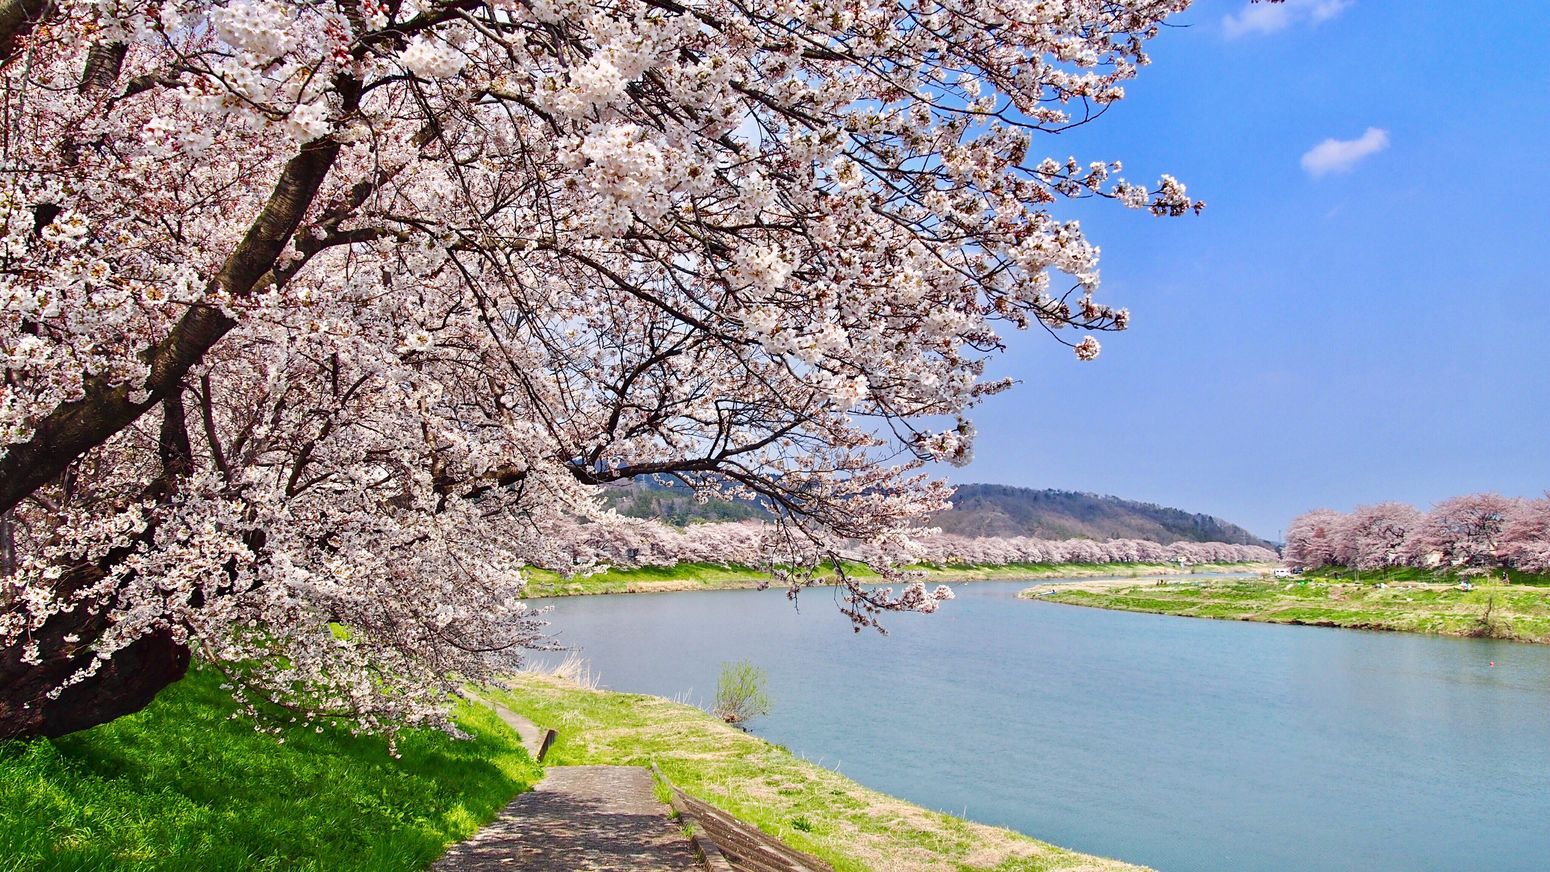 Spring Has Arrived 🌸🍡🍱🍶🌸 Ogawara Miyagi Tohoku Japan Photography Cherry Blossoms Sakura Spring Riverside Beauty In Nature Spring Flowers Pink Color Trees And Sky Springtime Japan Scenery EyeEm Best Shots Enjoying The View 一目千本桜 大河原 宮城県 東北 桜並木 春 桜 お花見